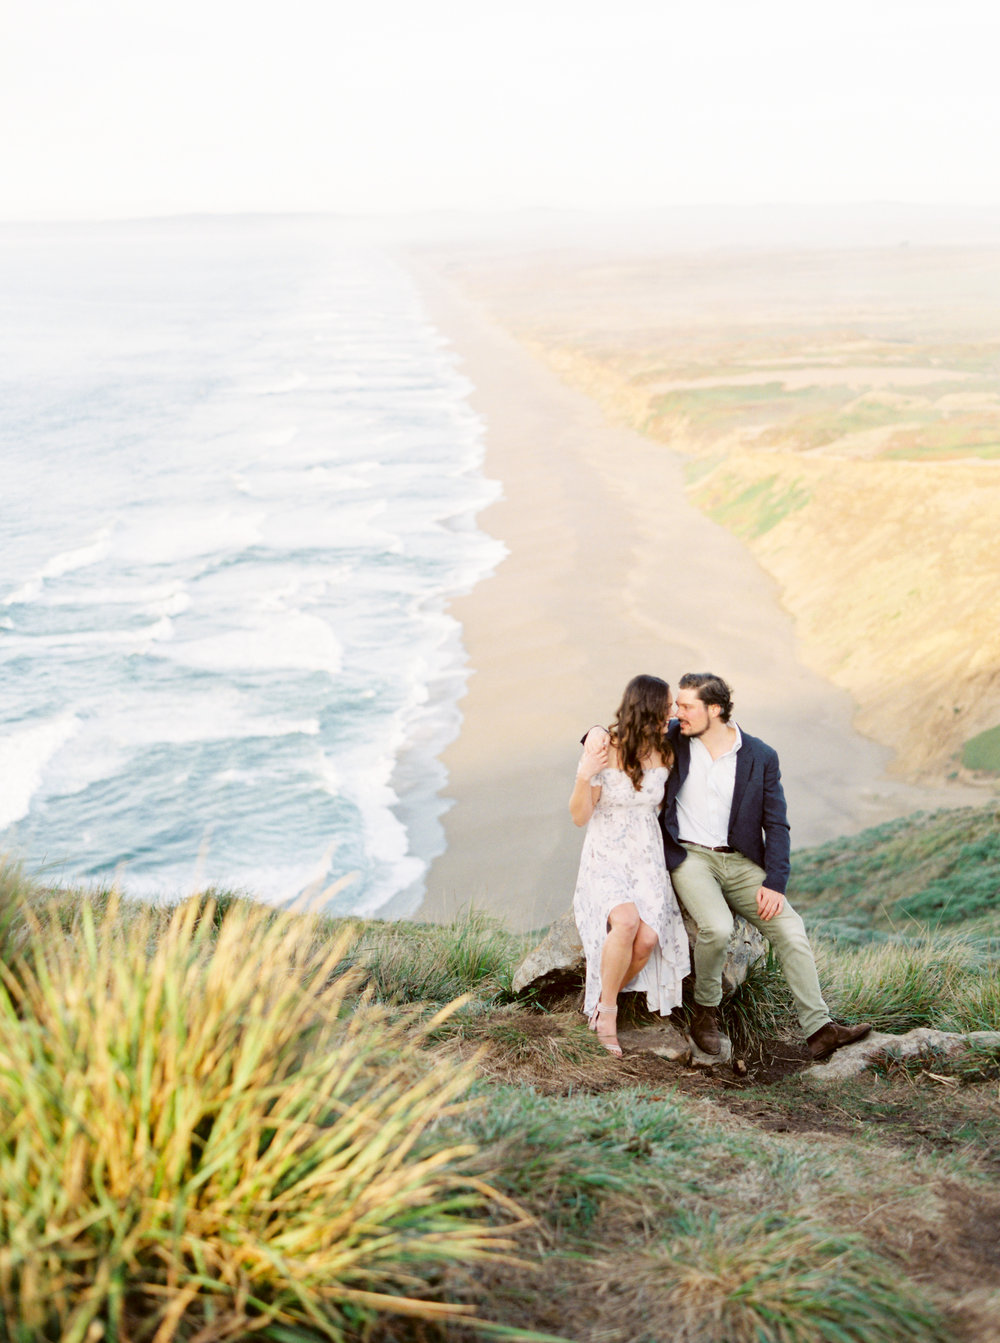 Point Reyes Engagement Session in San francisco California-59.jpg